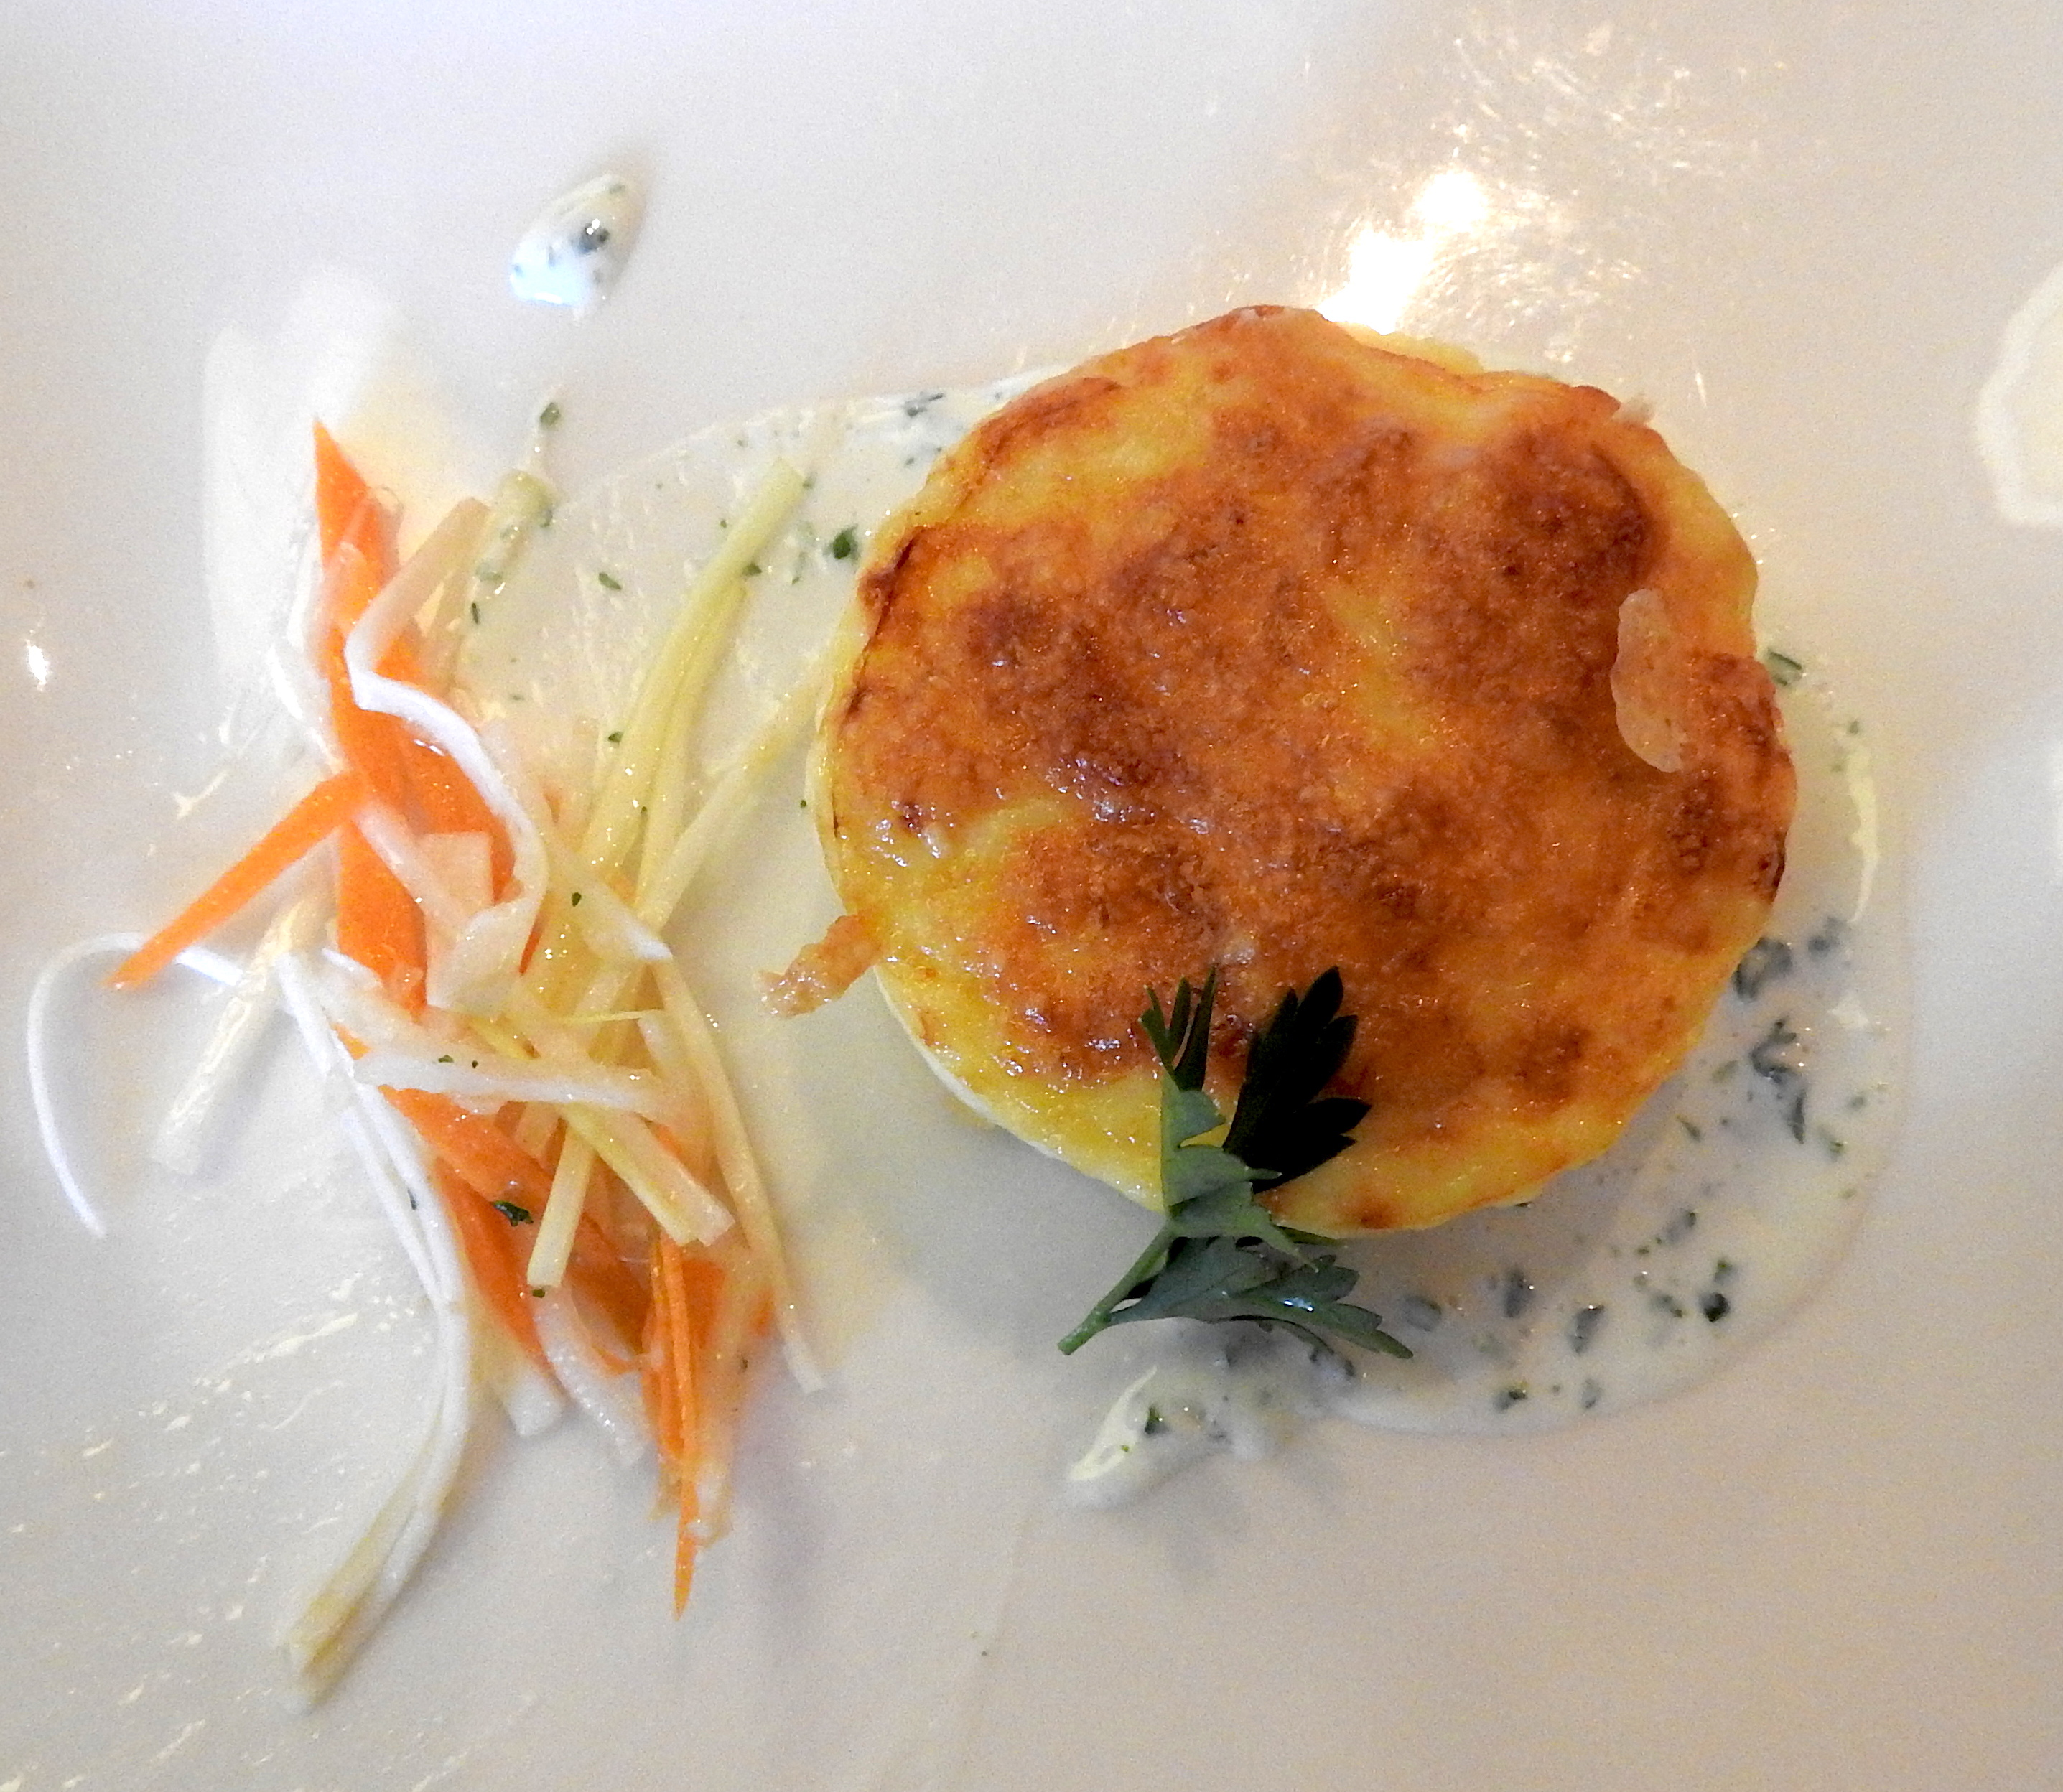 Cheese Souffle. Served as an appetizer one evening aboard the Viking Lef. It was so good, I ate two.